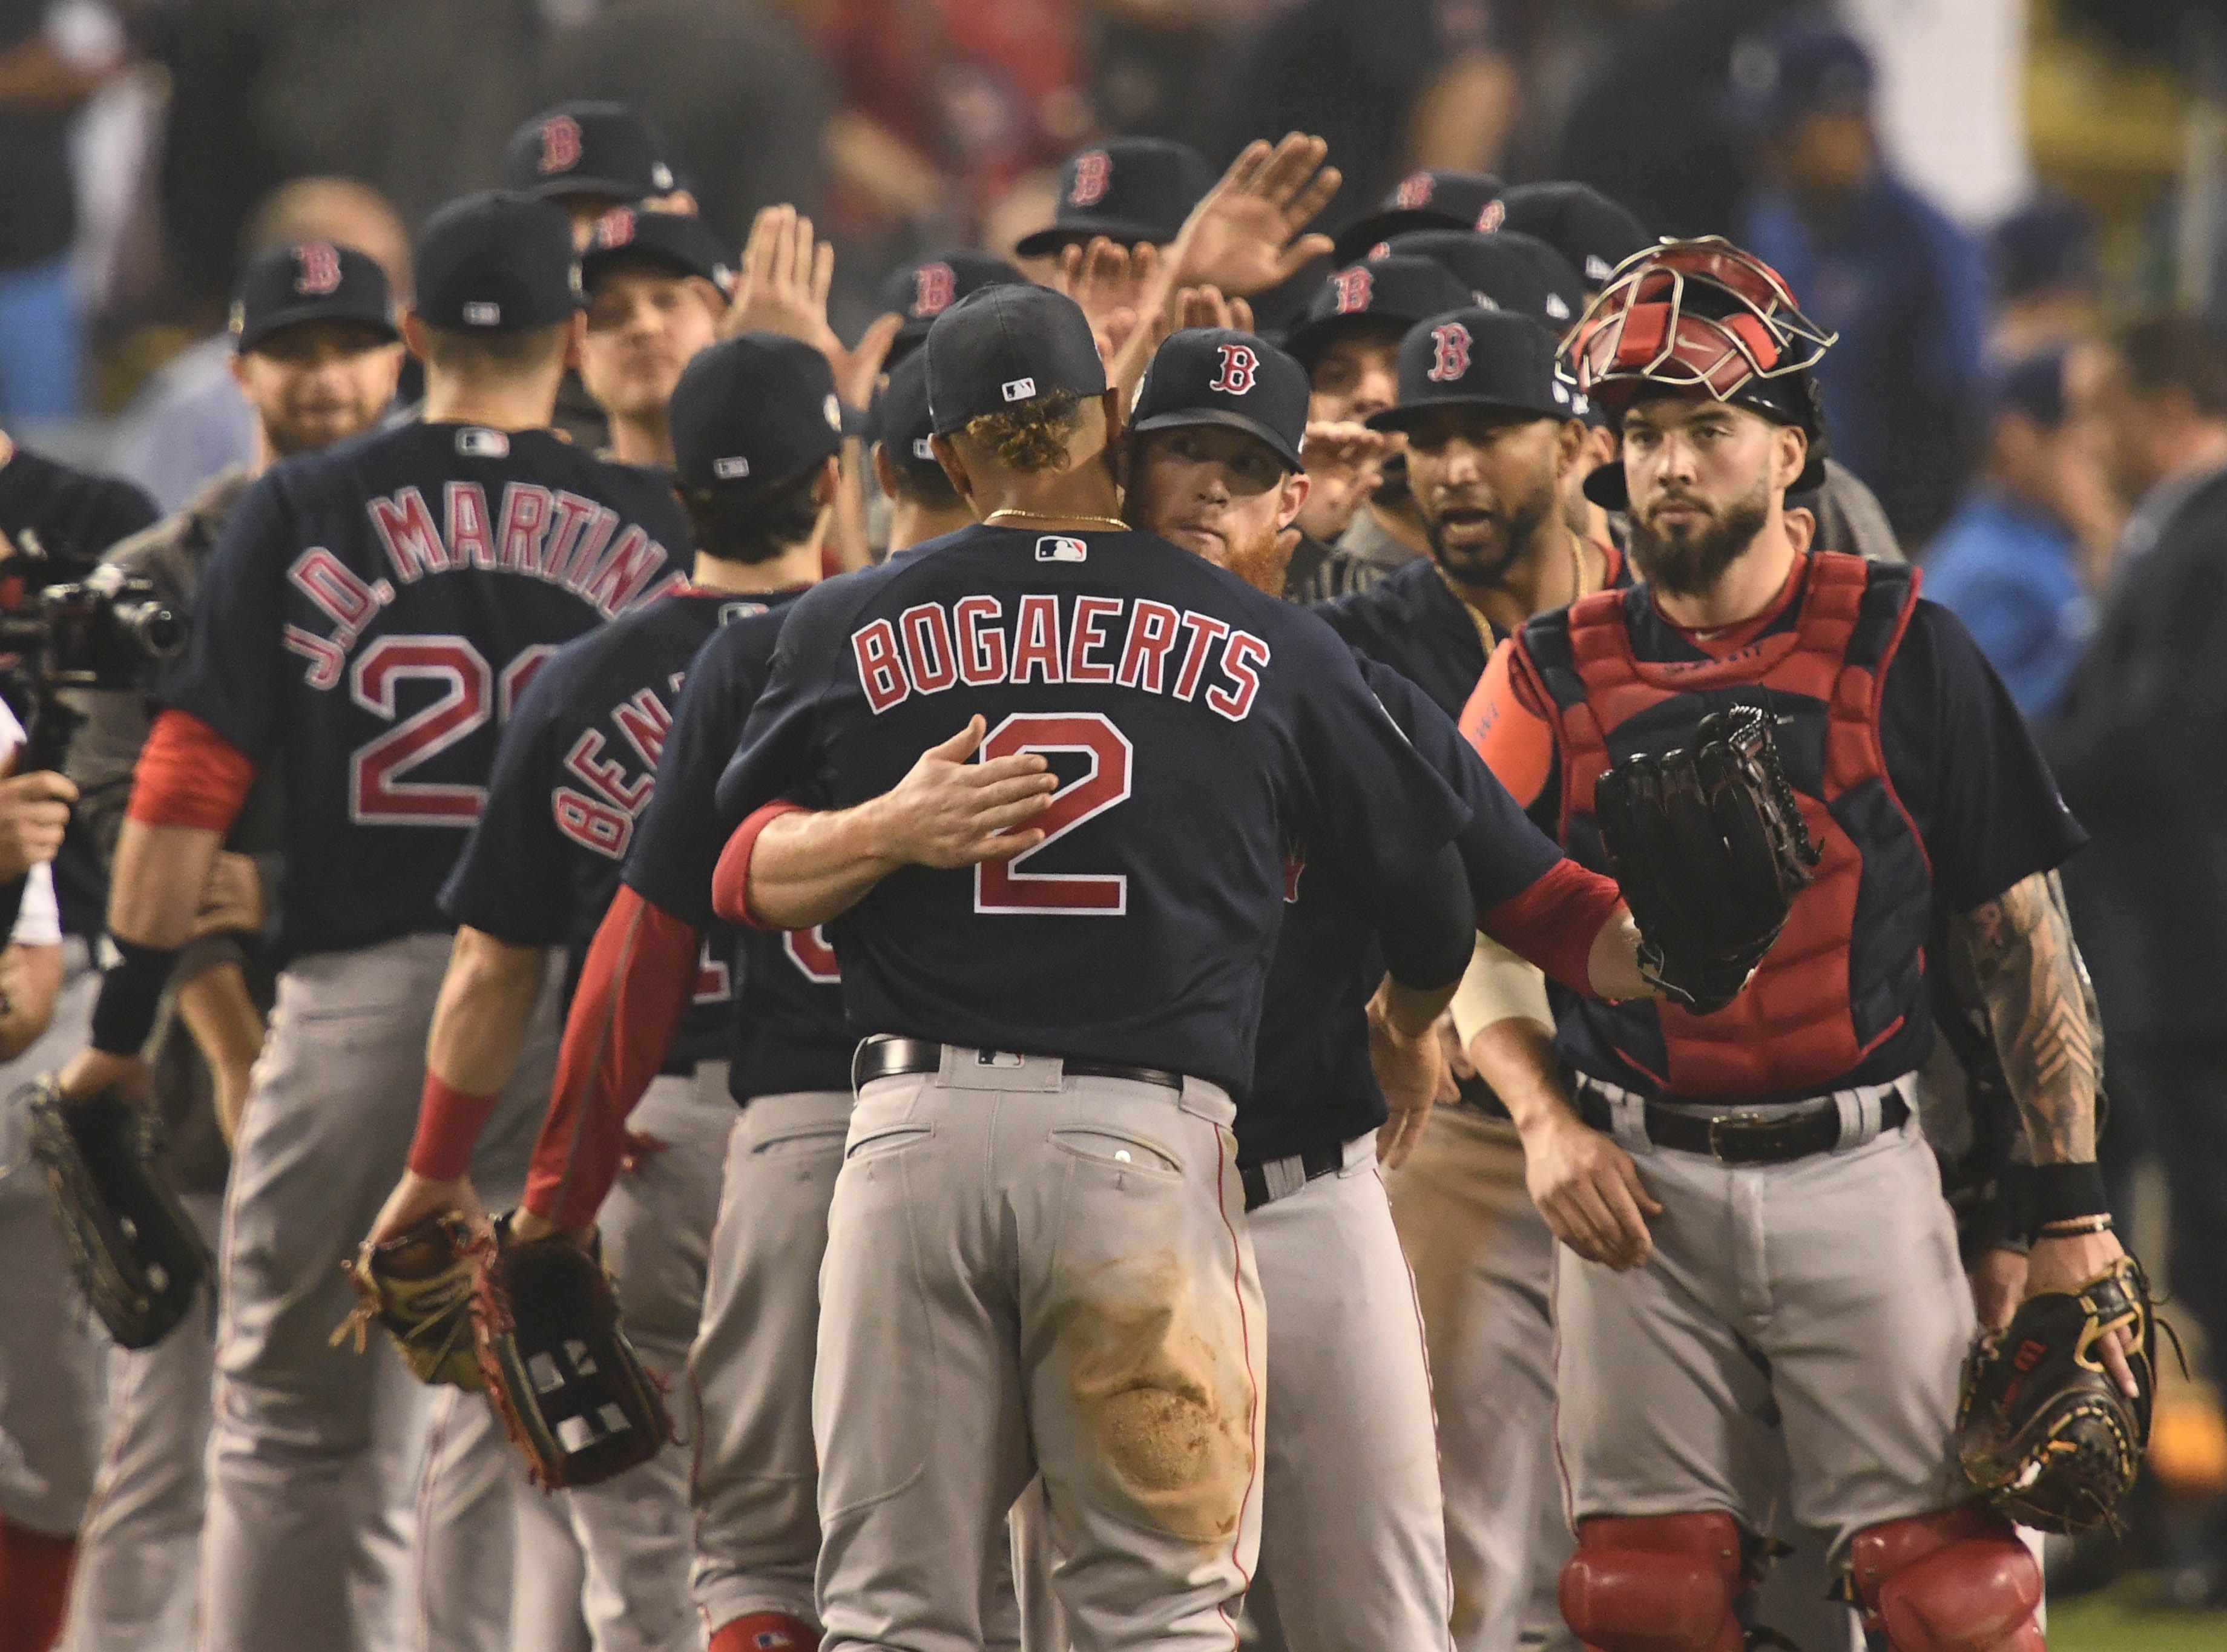 Game 4 at Dodger Stadium: Red Sox players celebrate after the win.